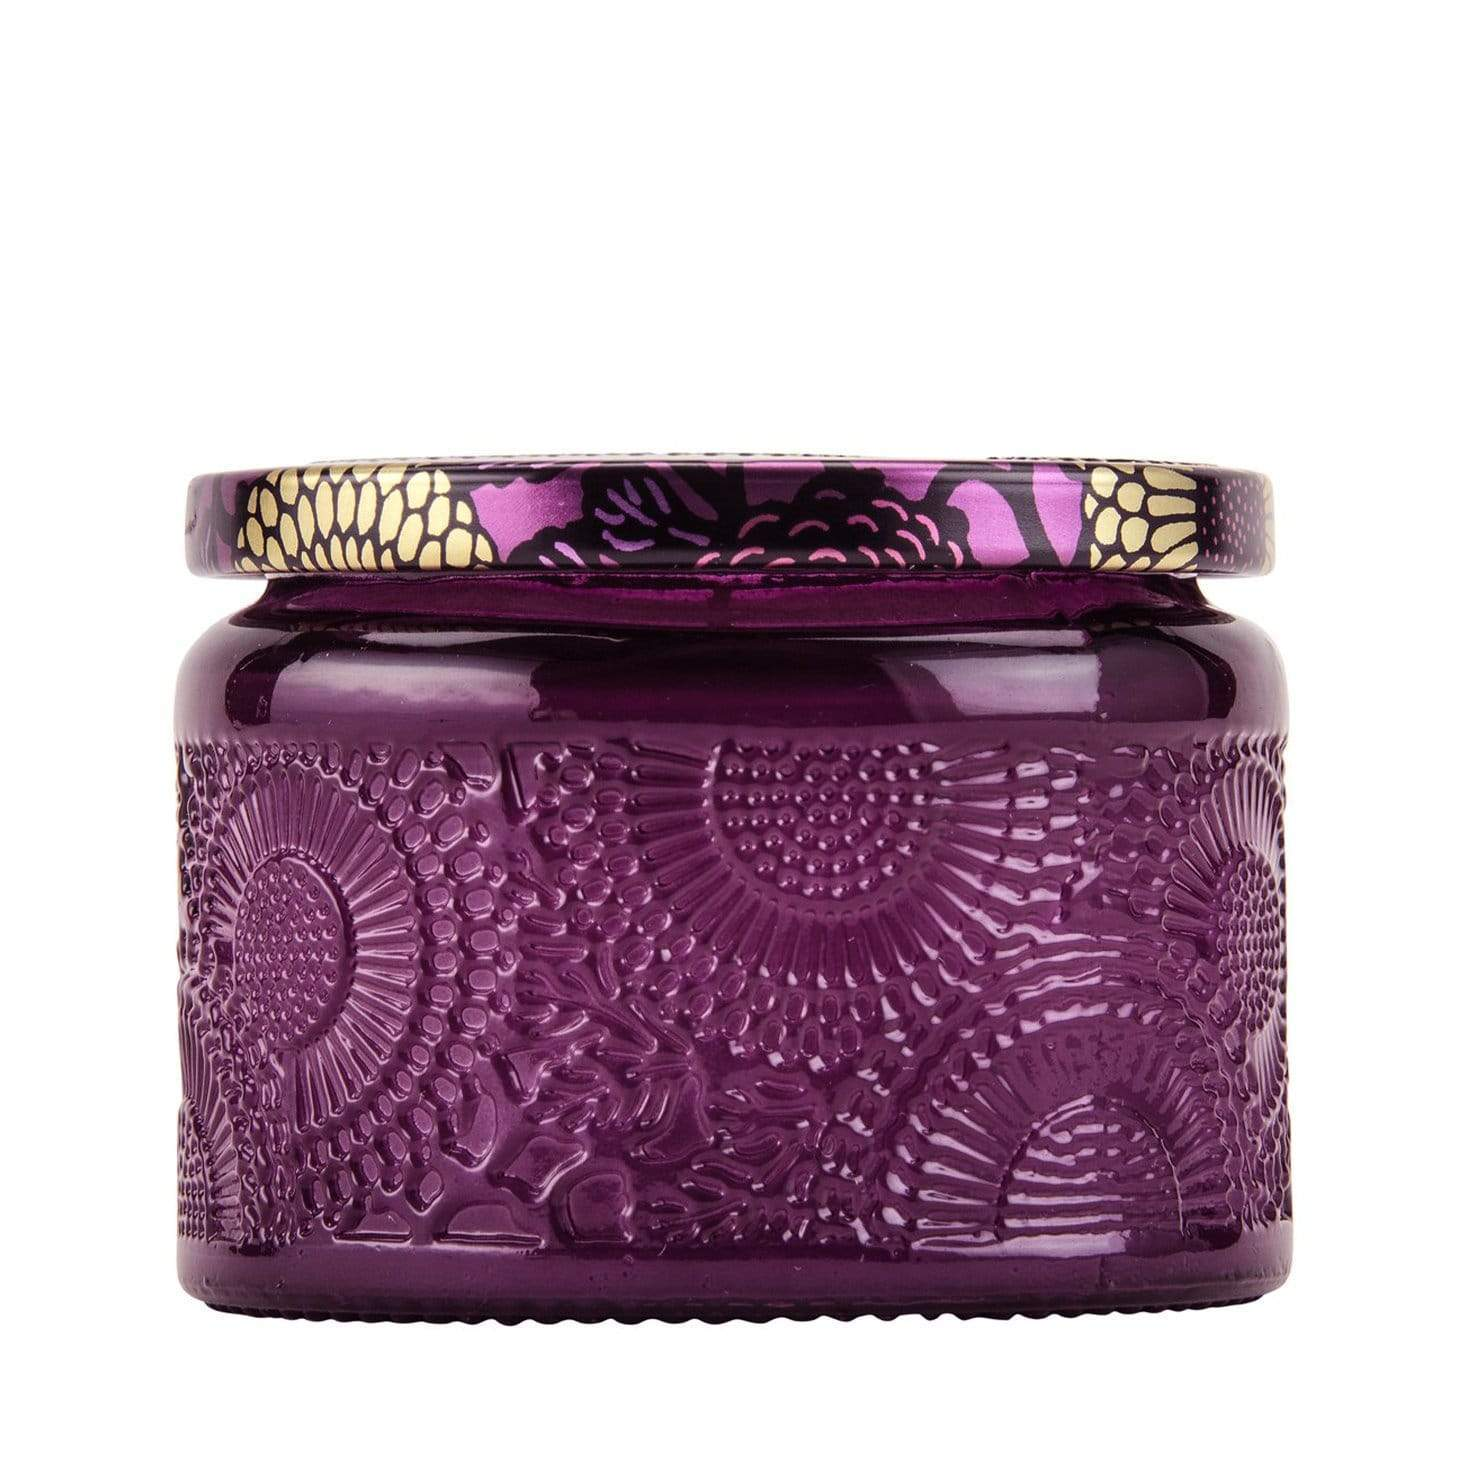 VOLUSPA - SANTIAGO HUCKLEBERRY PETITE CANDLE